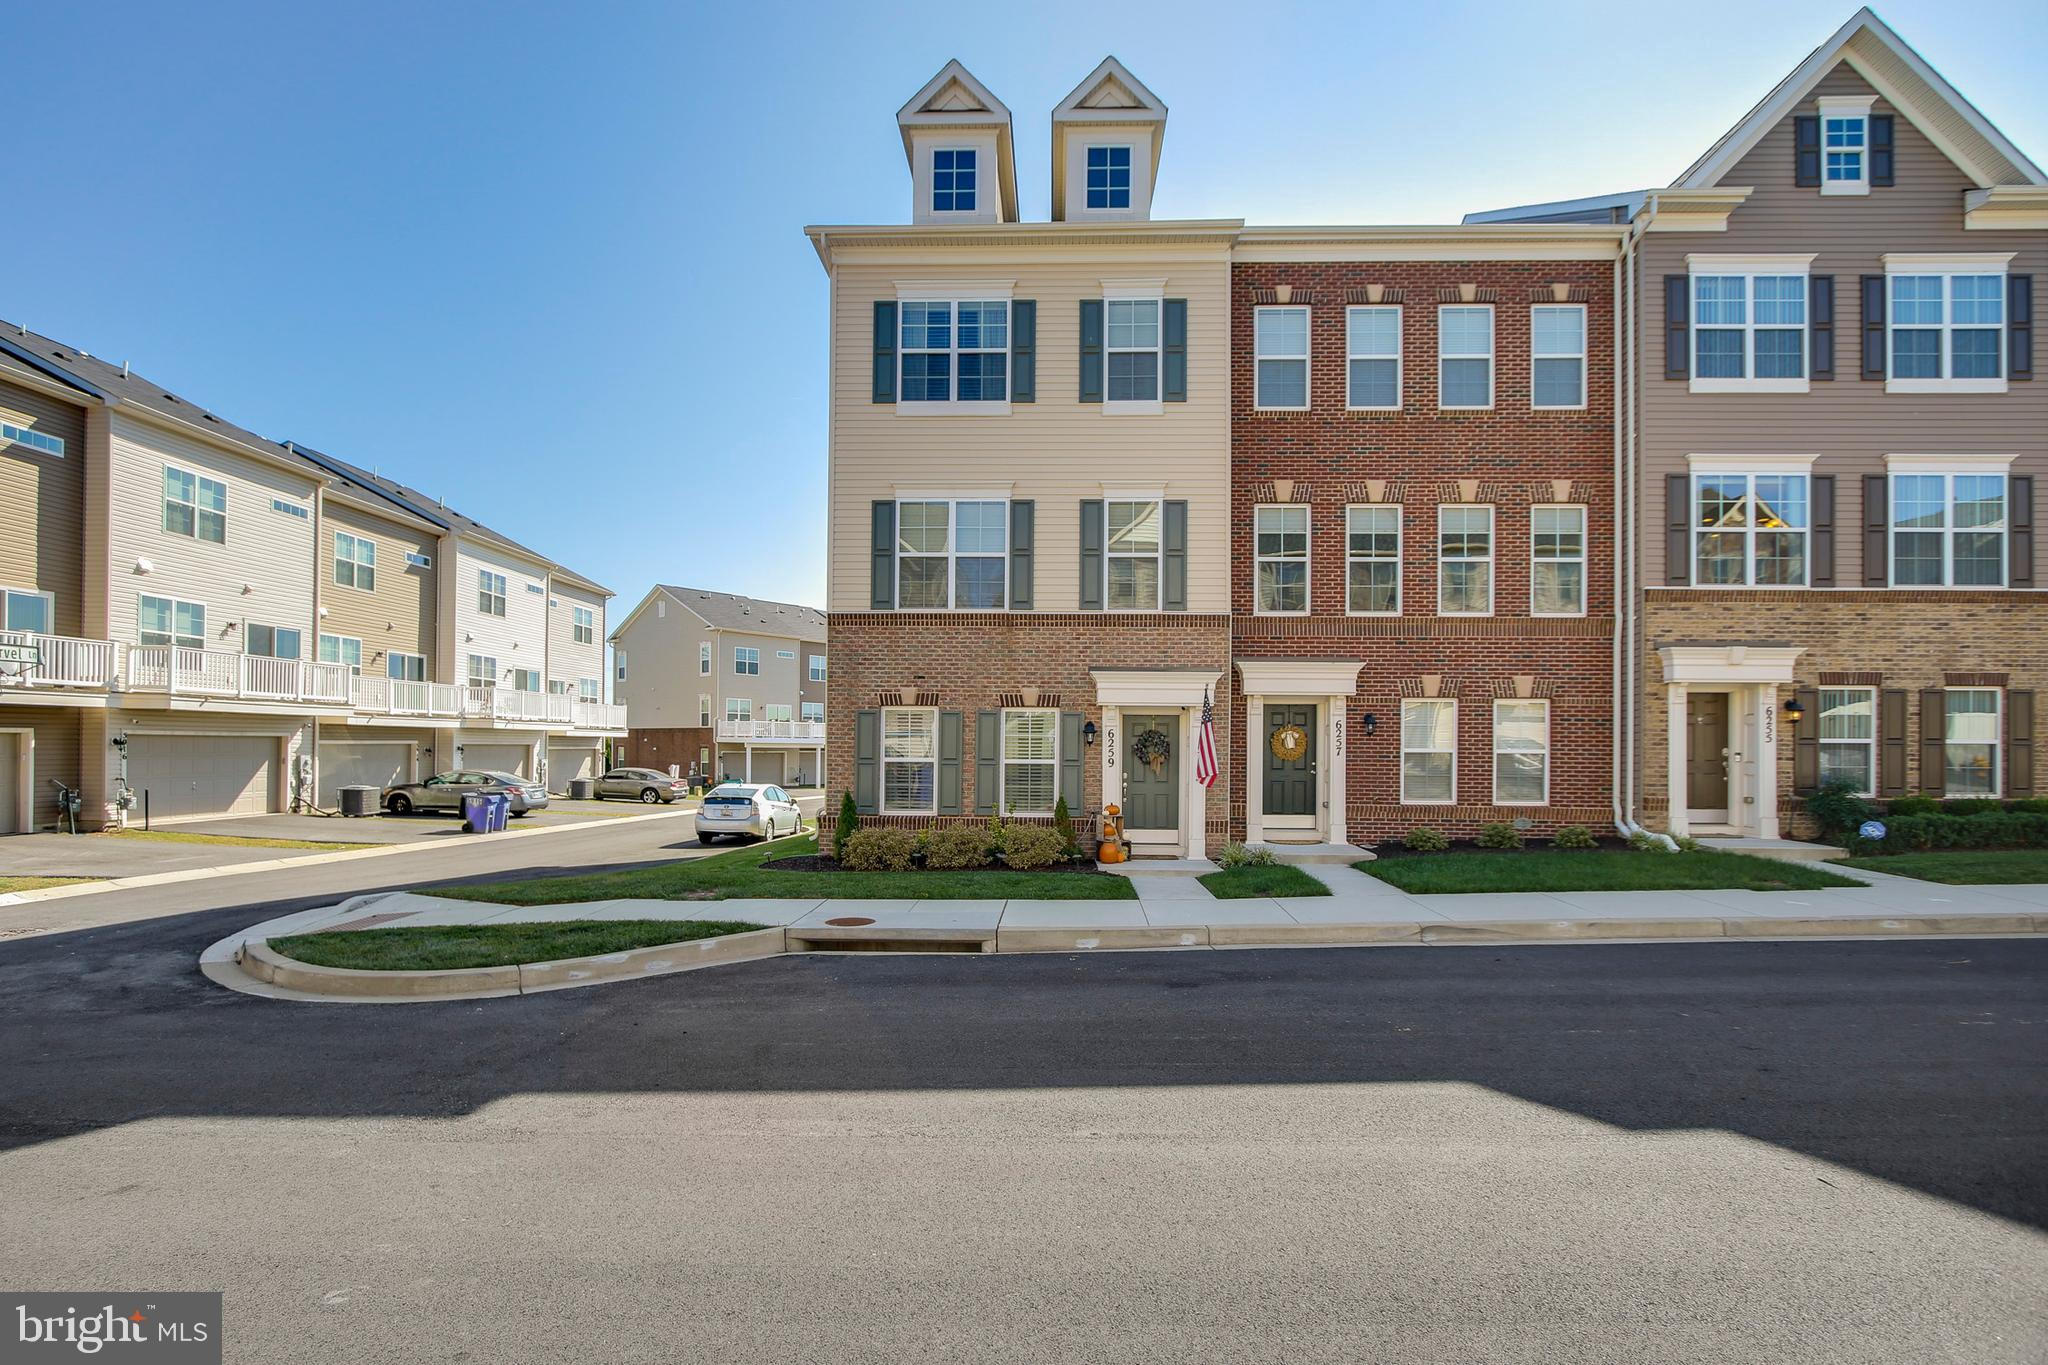 6259 RITTER Dr, Frederick, MD, 21703